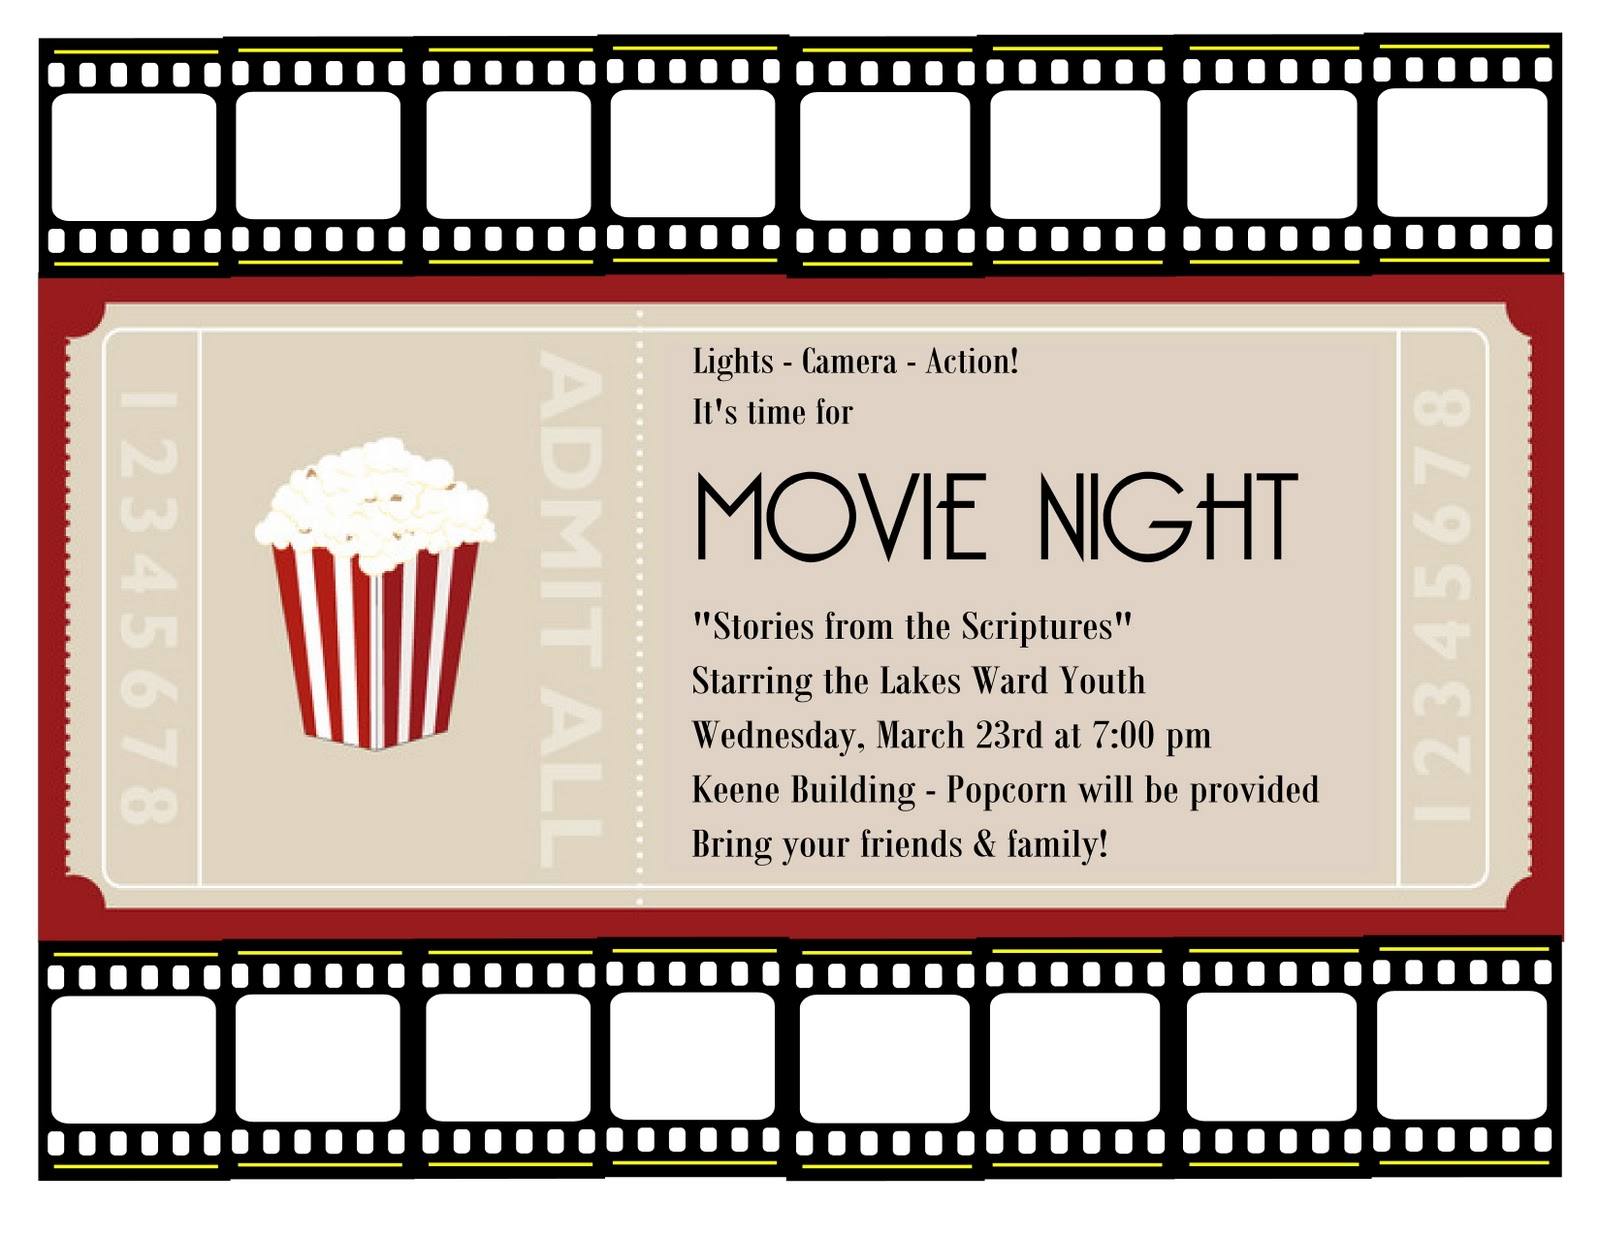 Free Birthday Invitation Clipart additionally Movie Night as well Friday Night Movie Whos Your Favorite Leading Lady as well Movie Pass moreover Viewing party. on movie night ticket invitation